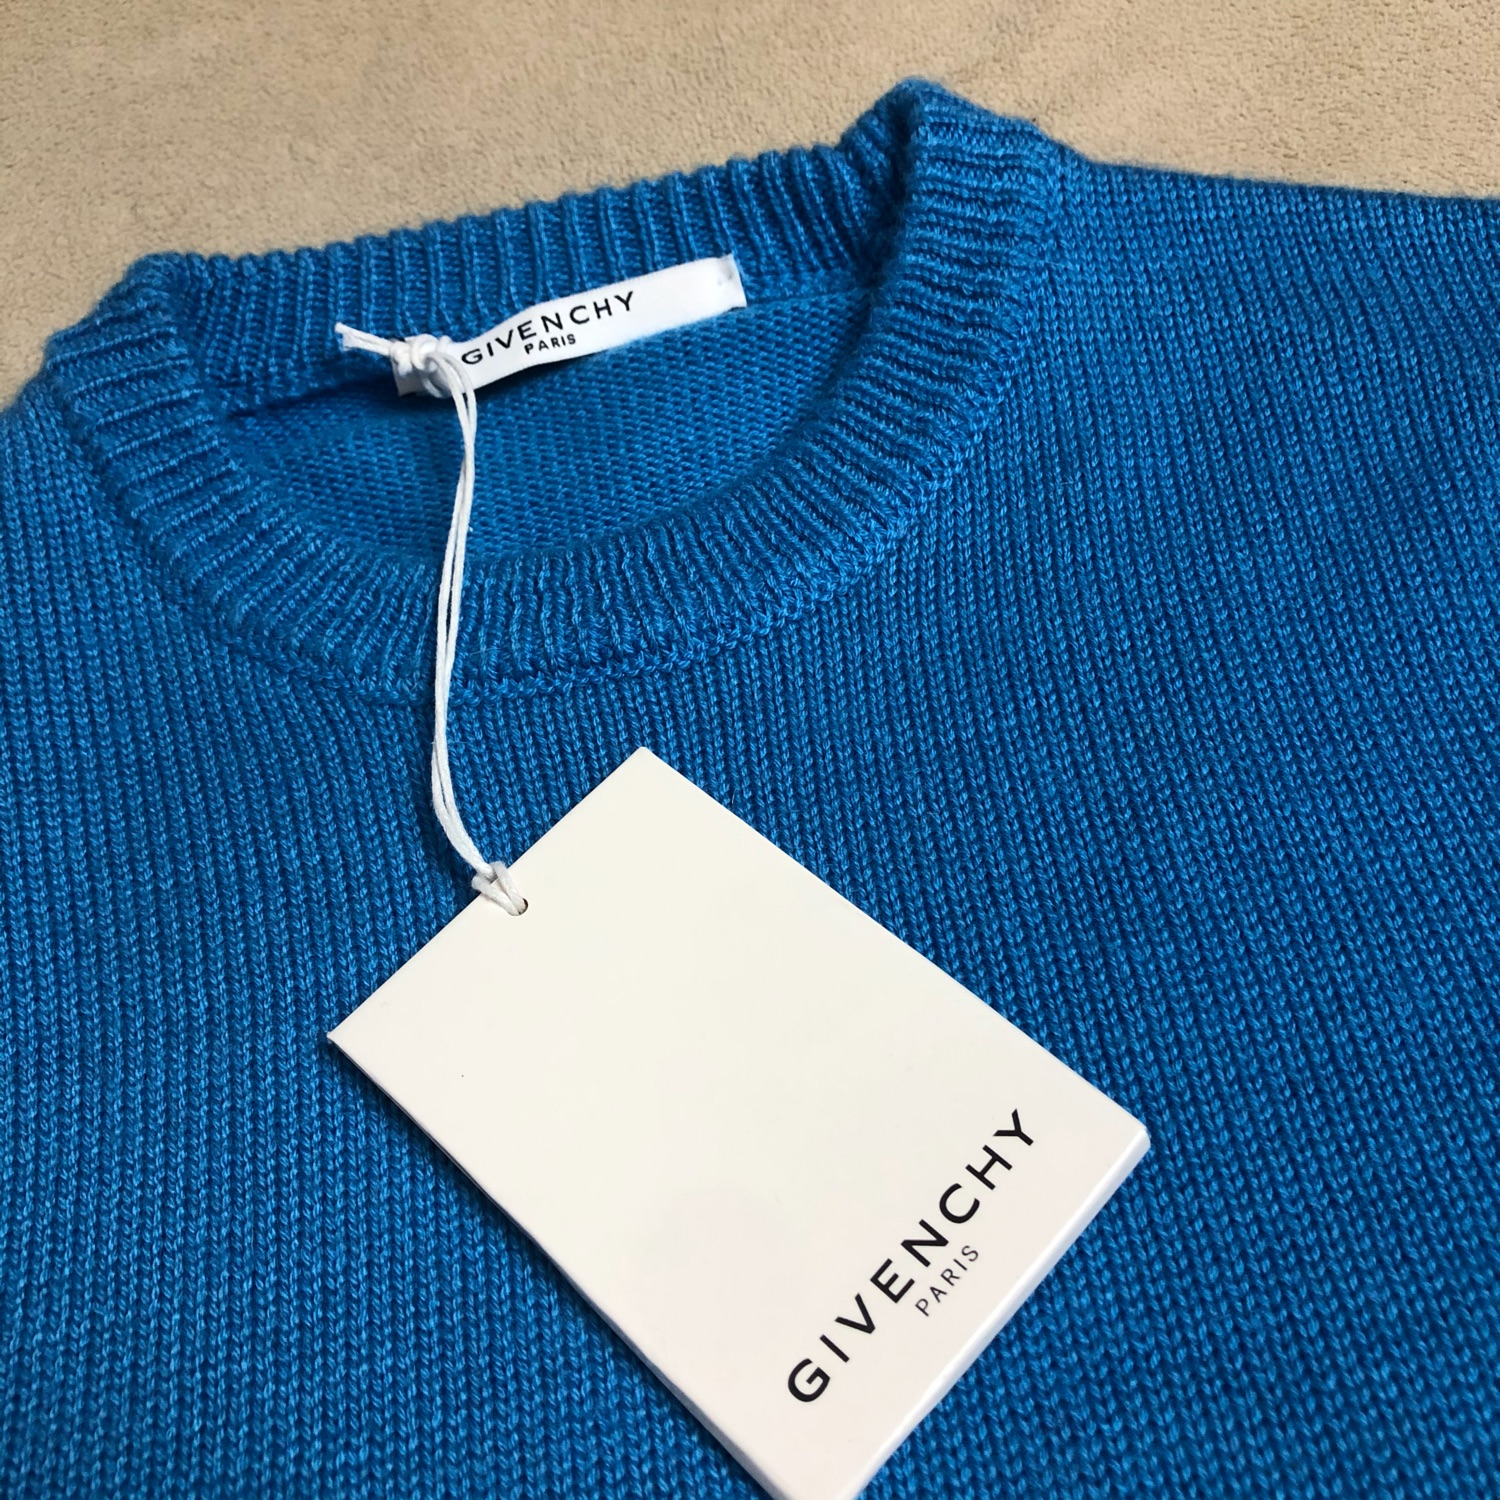 Blue Givenchy Mens Crewneck Jumper New